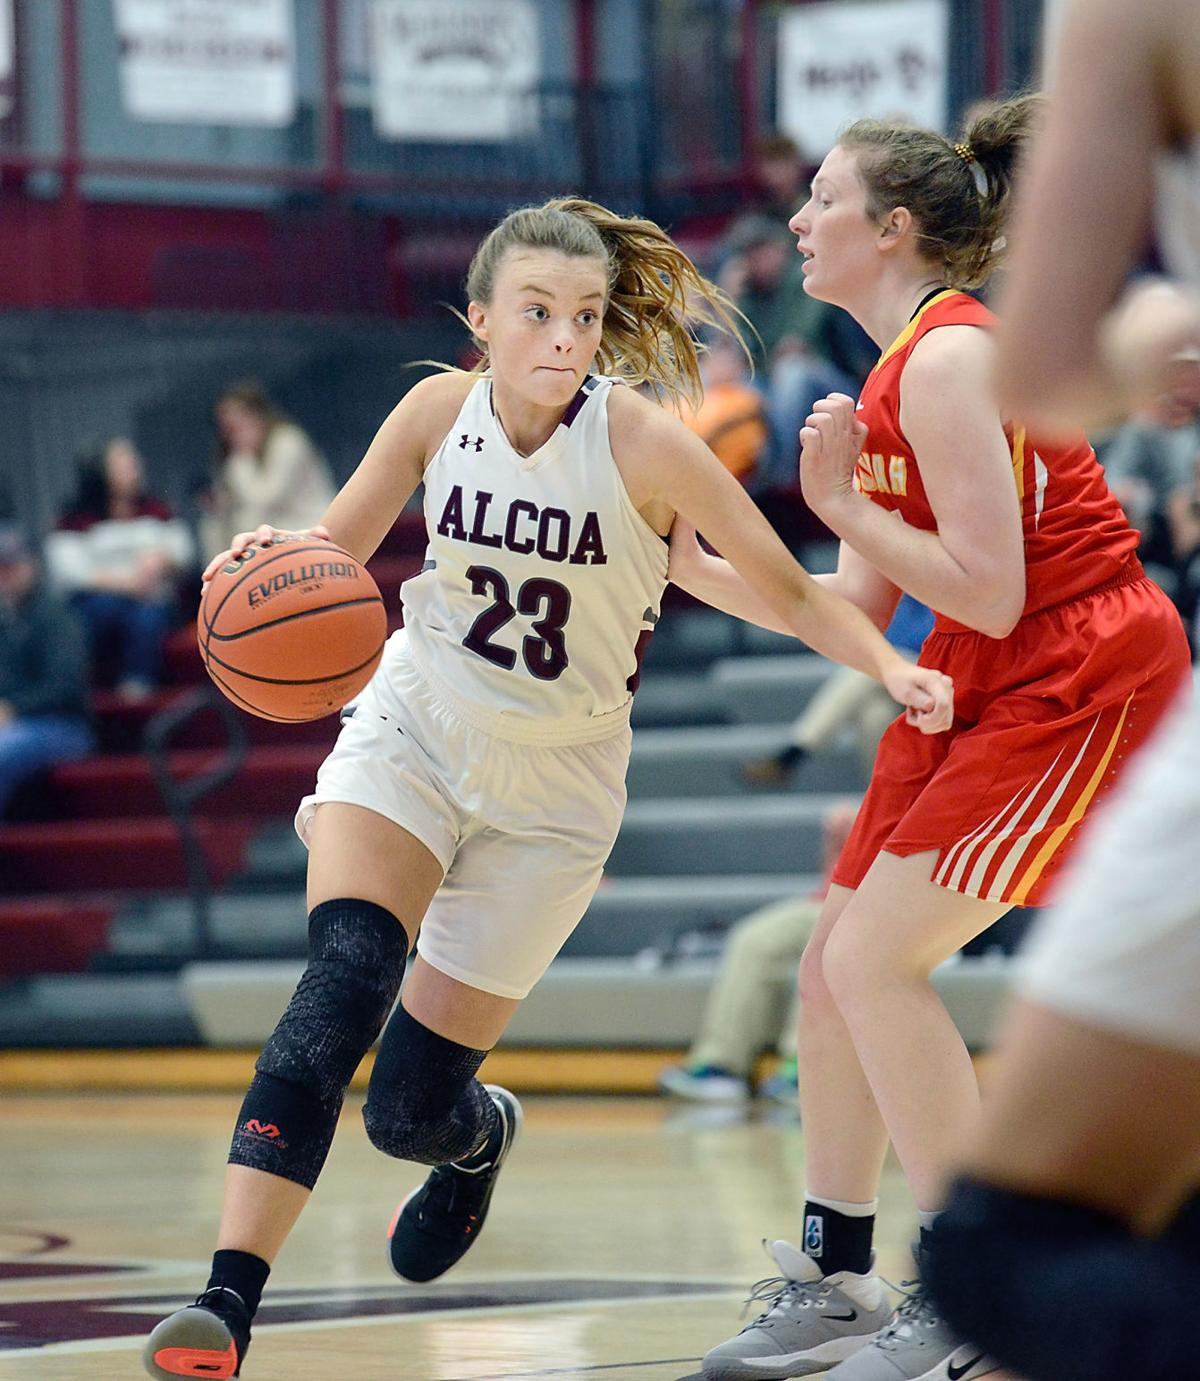 BBALL: Alcoa vs Sequoyah